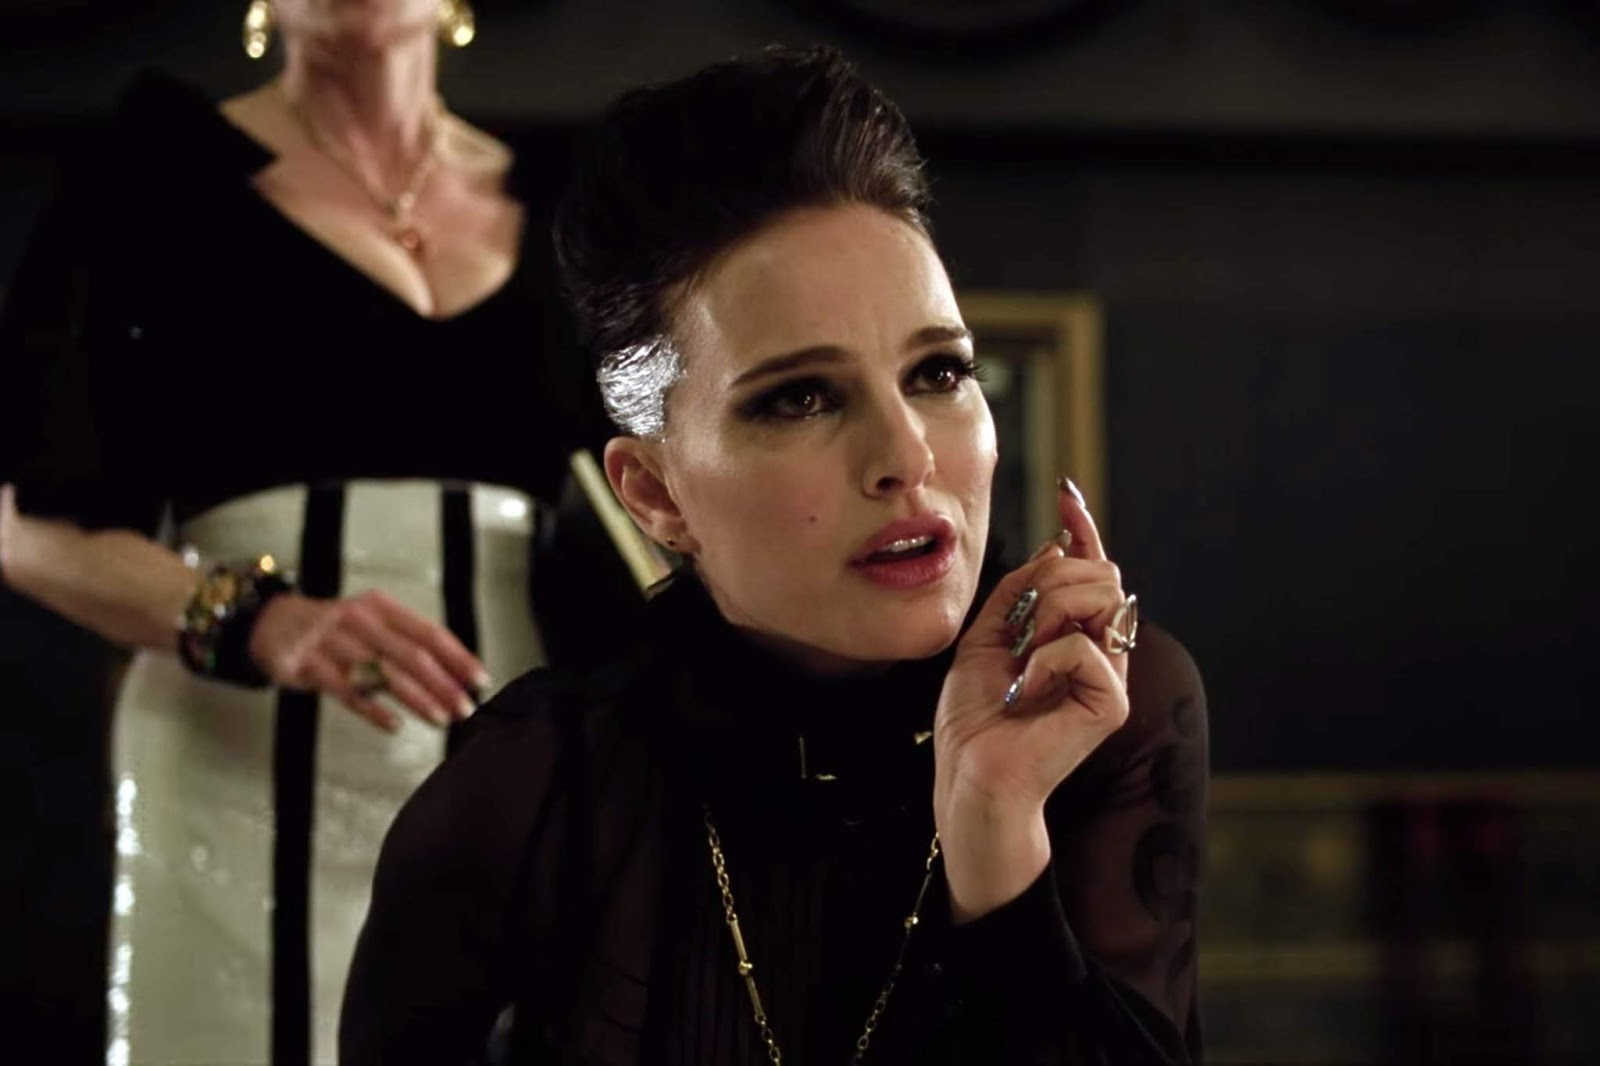 Vox Lux Trailer Natalie Portman Looks To Sing Her Way Into The